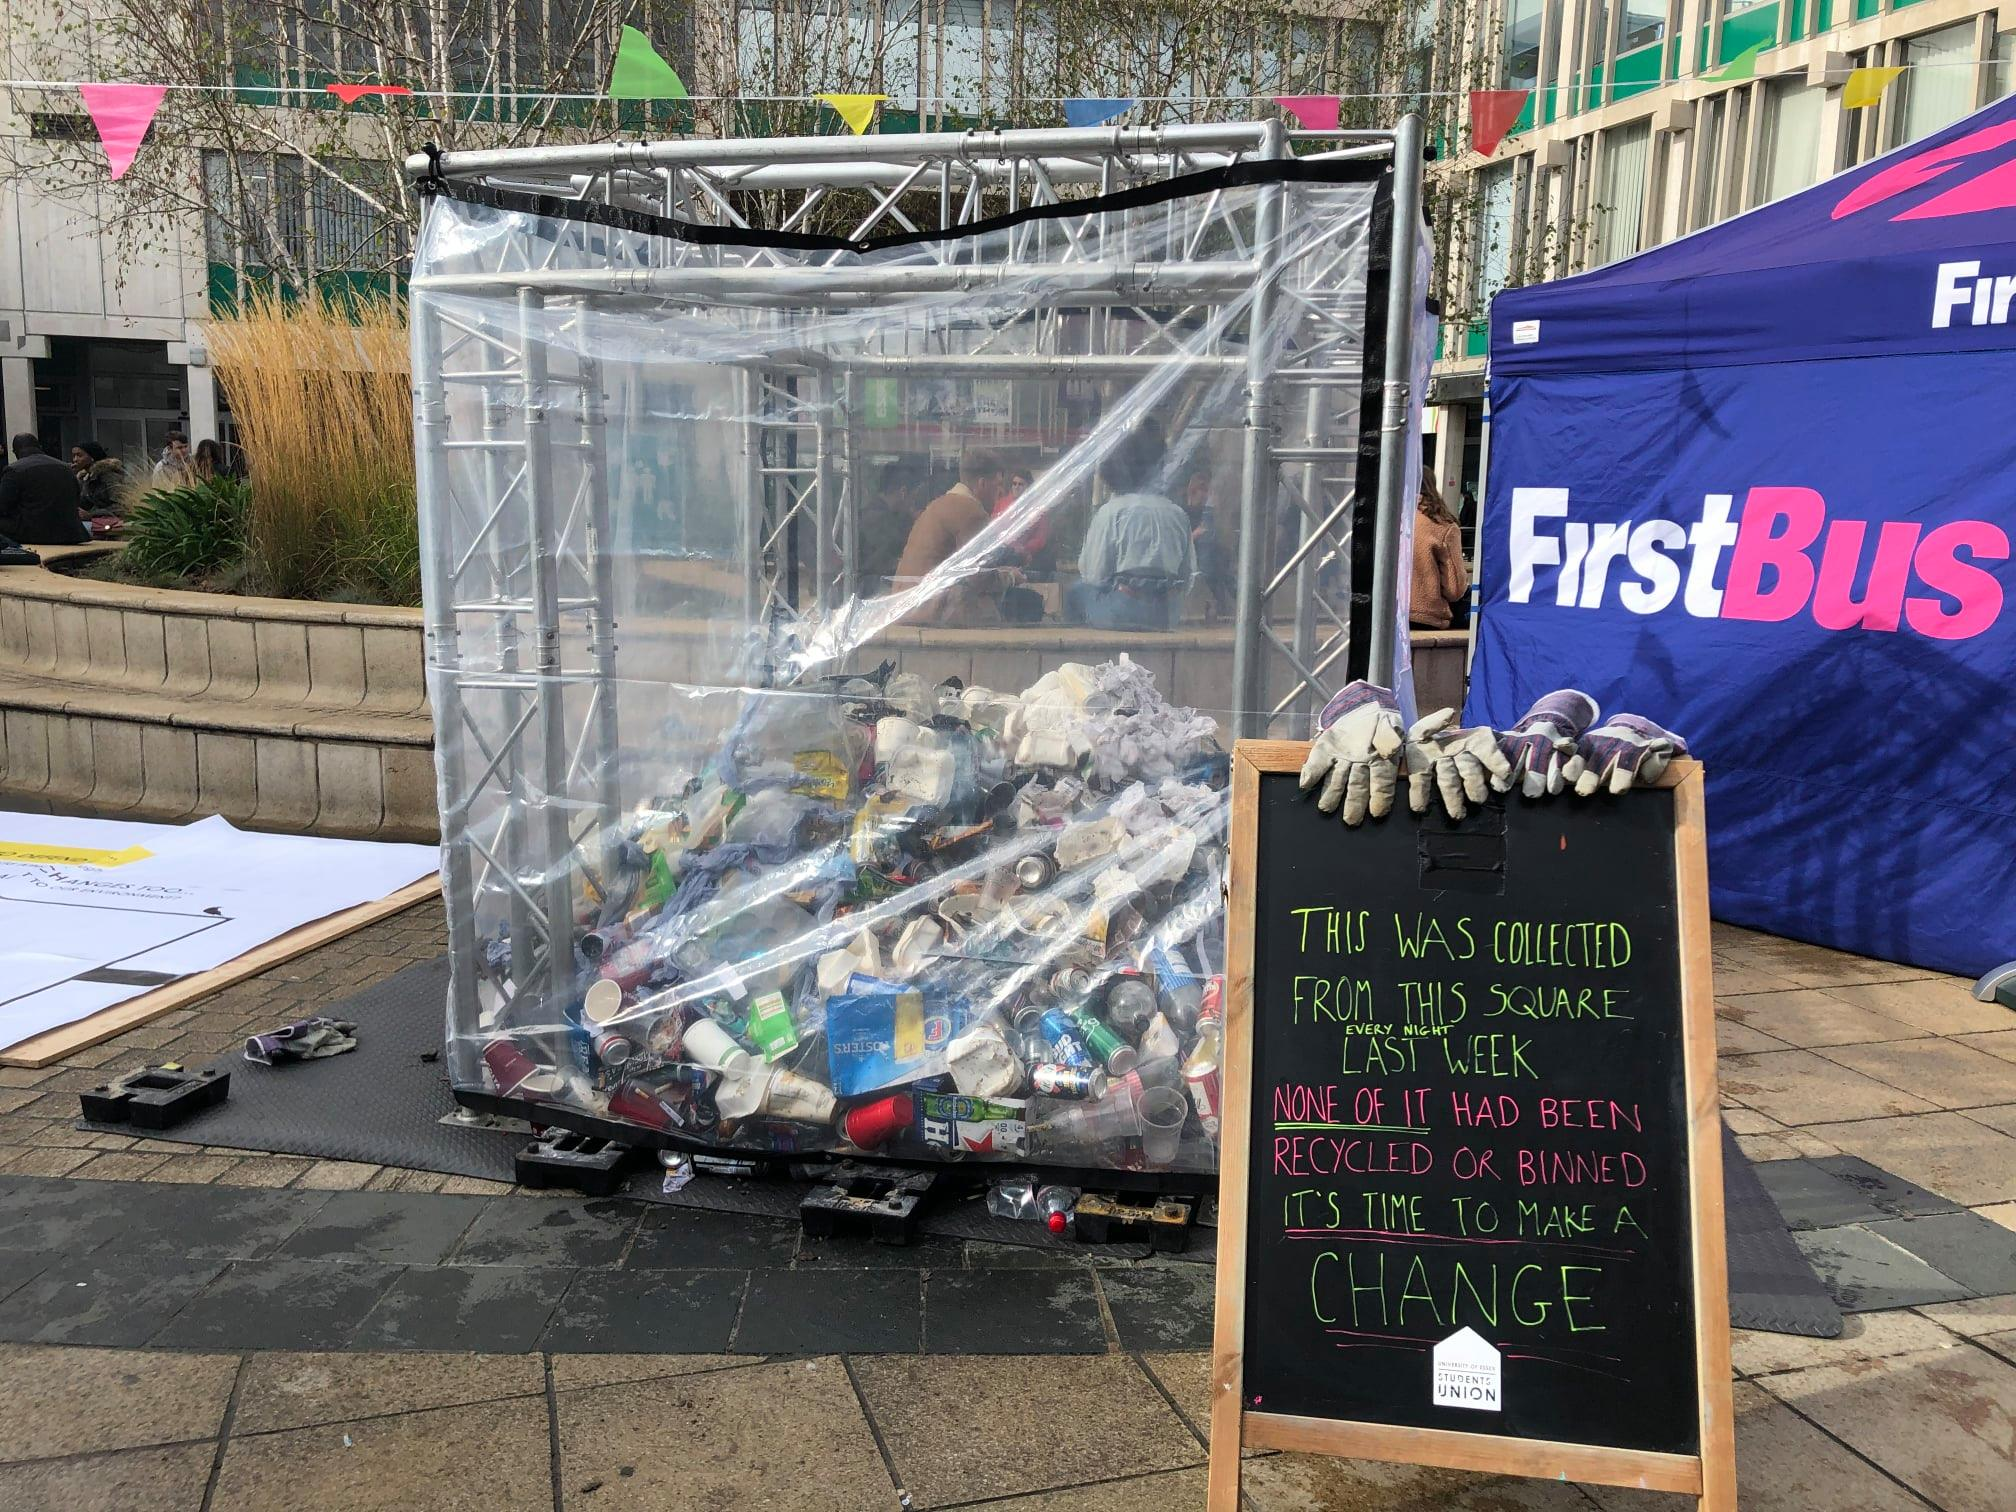 Image of the rubbish mountain, a large square cage half full of litter